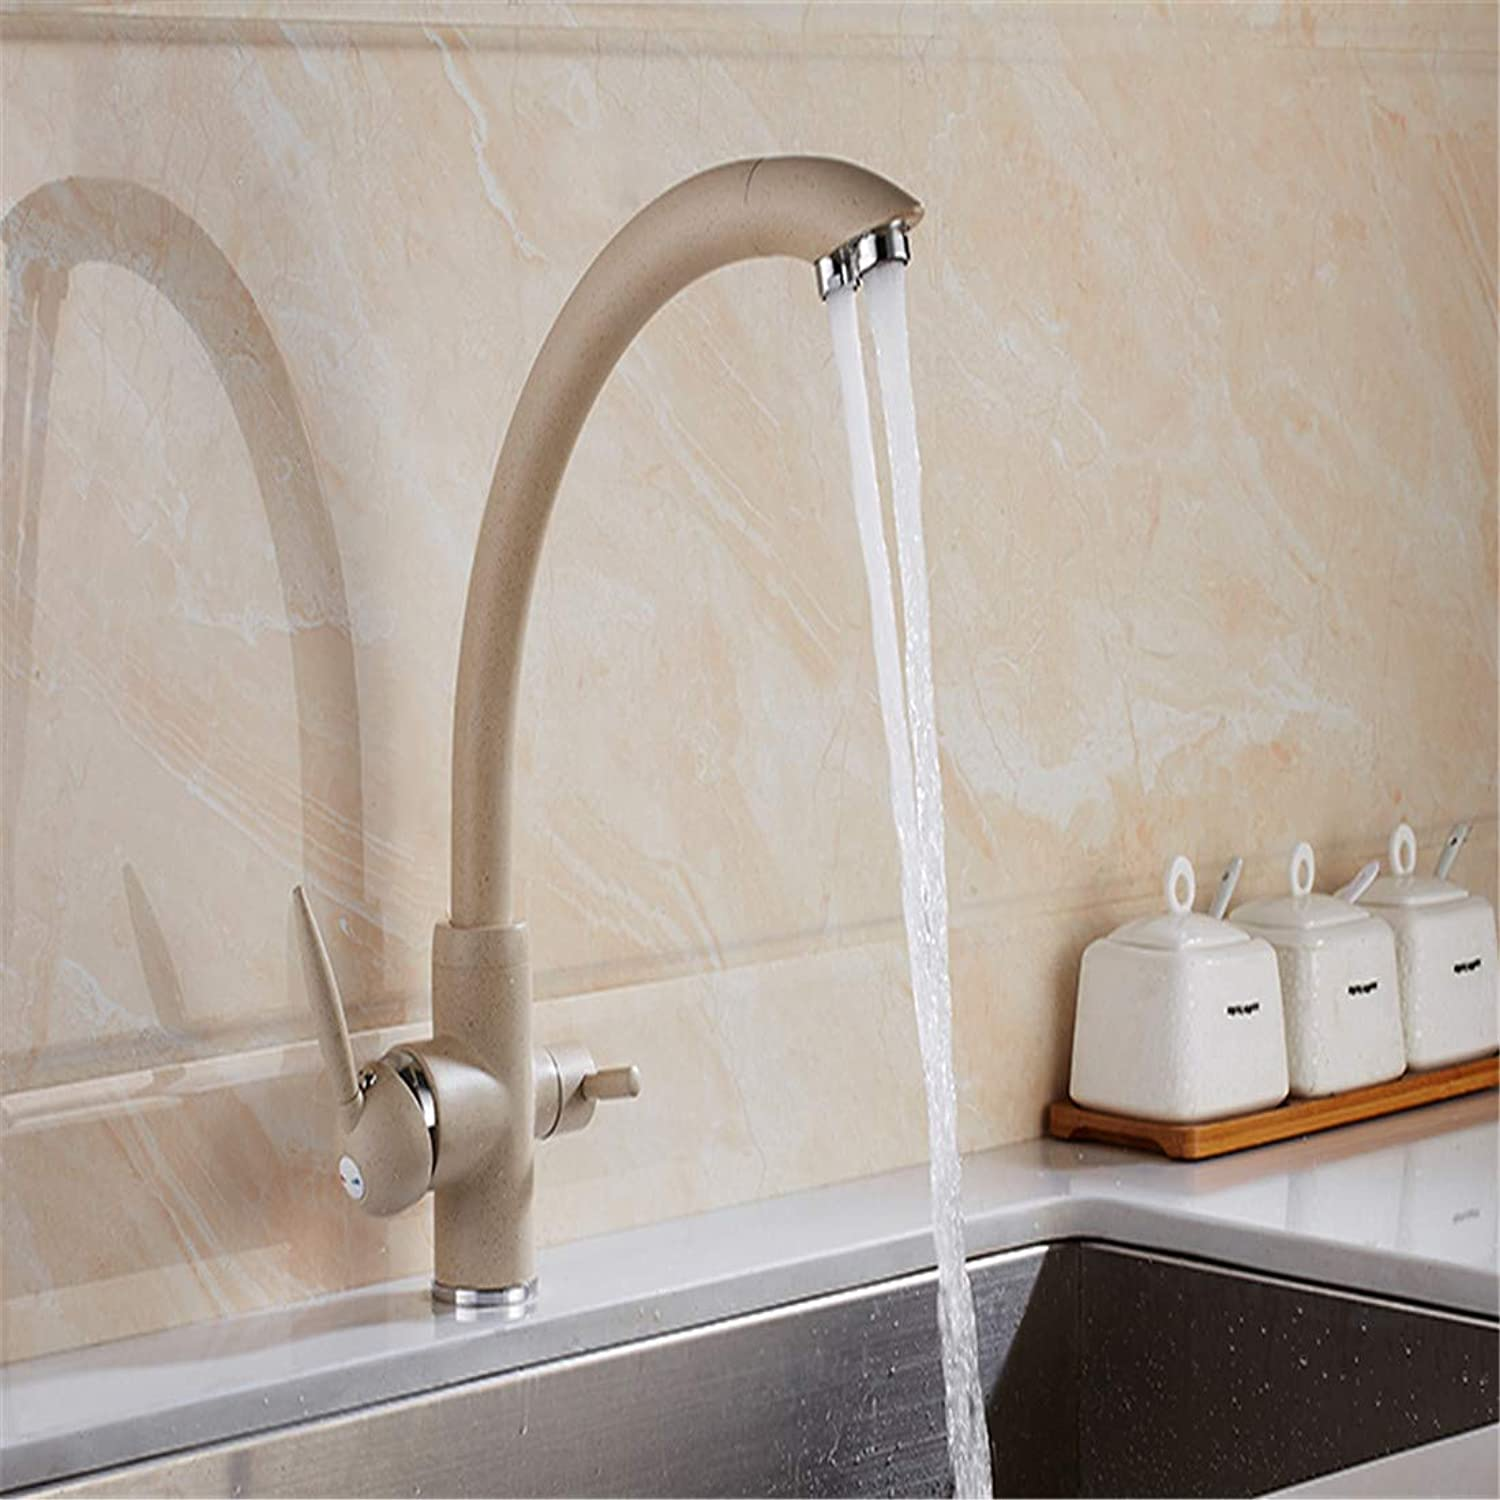 Retro Plated Hot and Cold Faucet Retrokitchen Faucets Solid Brass Crane for Kitchen Deck Mounted Water Filter Tap